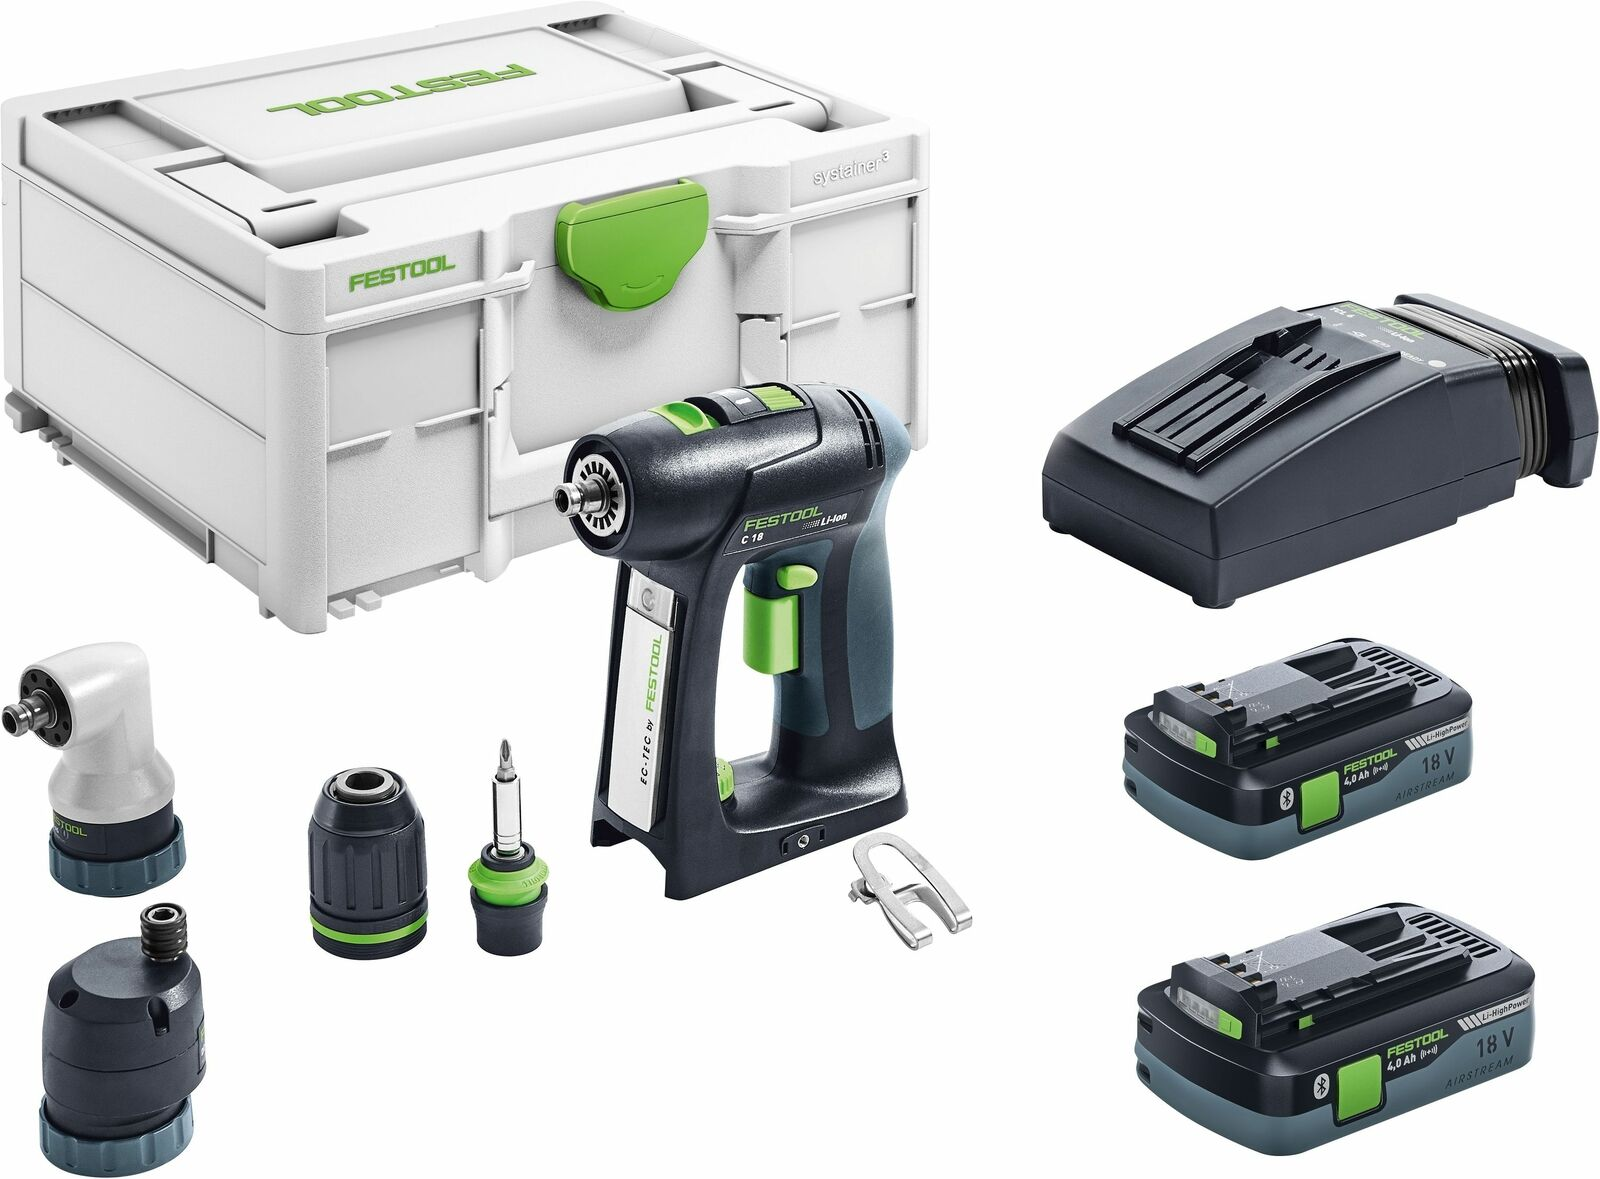 festool akku bohrschrauber c 18 li 5 2 set 575672 eur 629 00 picclick fr. Black Bedroom Furniture Sets. Home Design Ideas